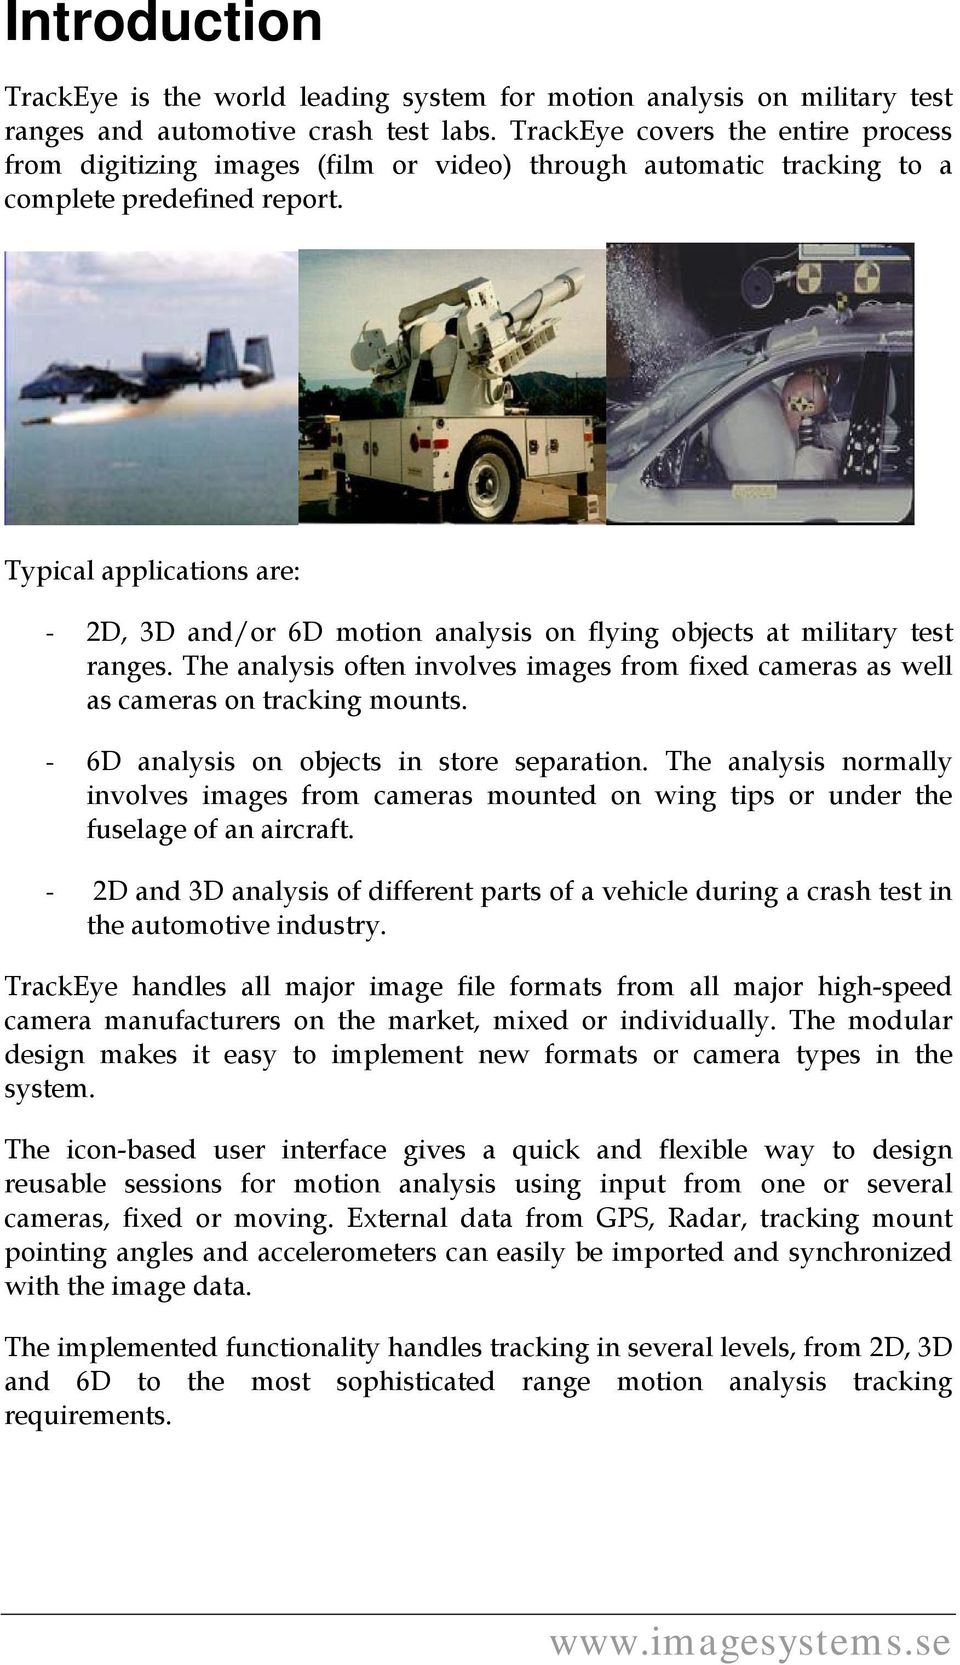 Typical applications are: - 2D, 3D and/or 6D motion analysis on flying objects at military test ranges. The analysis often involves images from fixed cameras as well as cameras on tracking mounts.